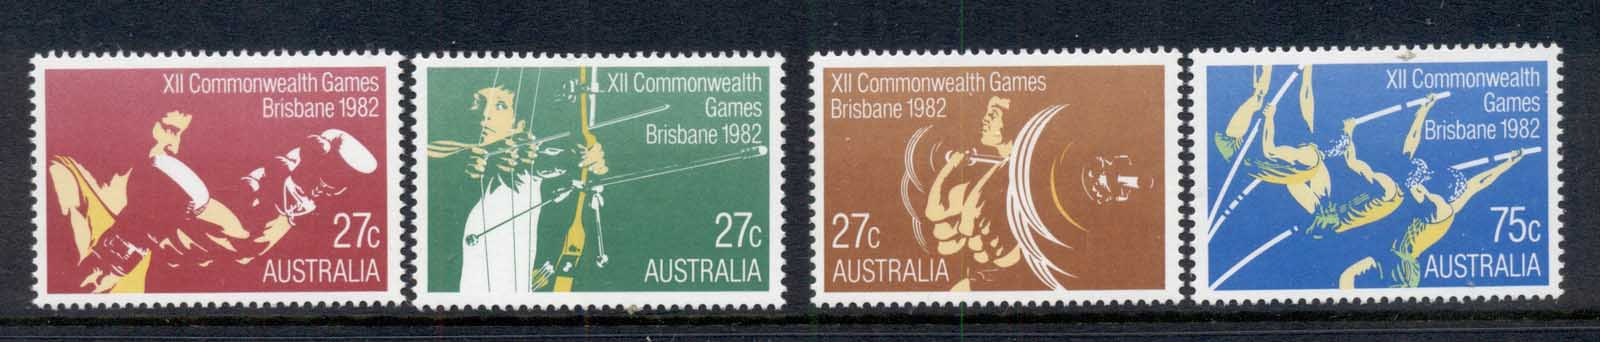 Australia 1982 Commonwealth Games MUH